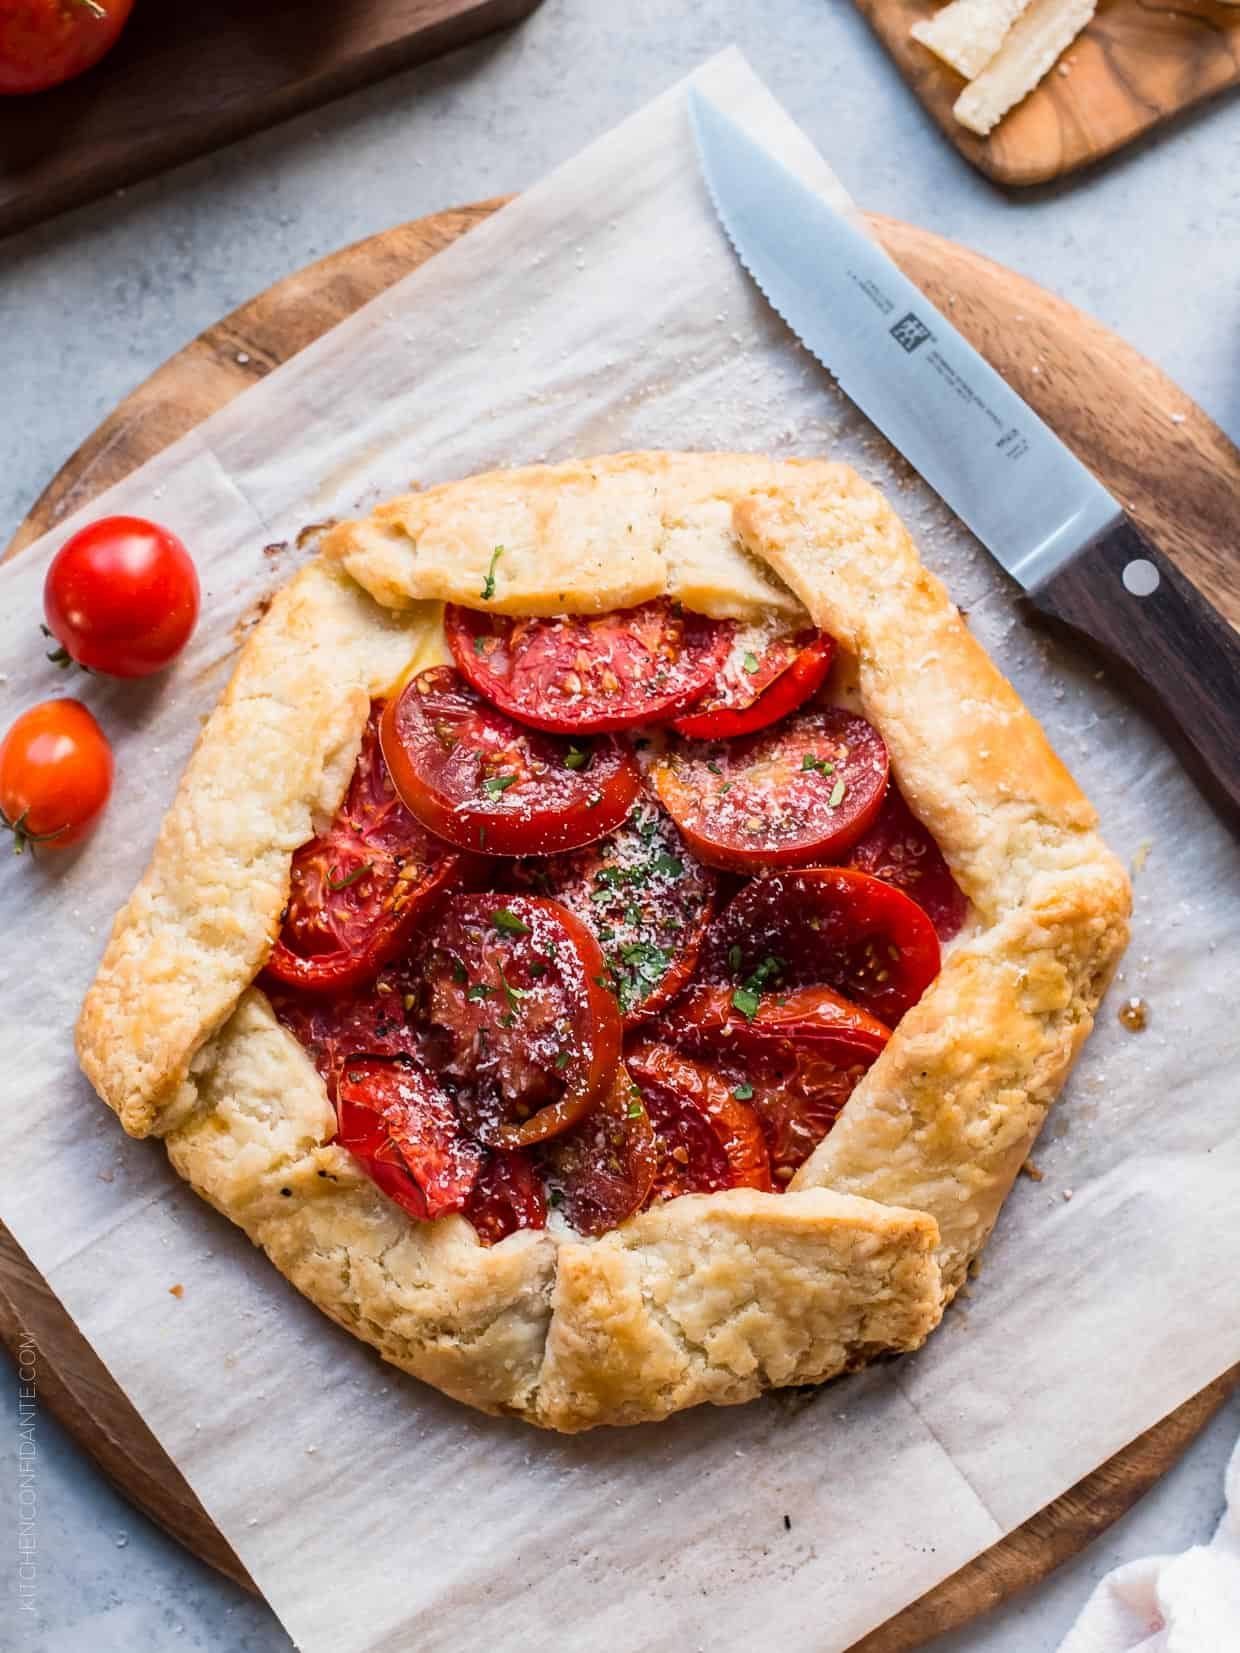 A freshly baked Tomato Ricotta Galette on parchment paper.